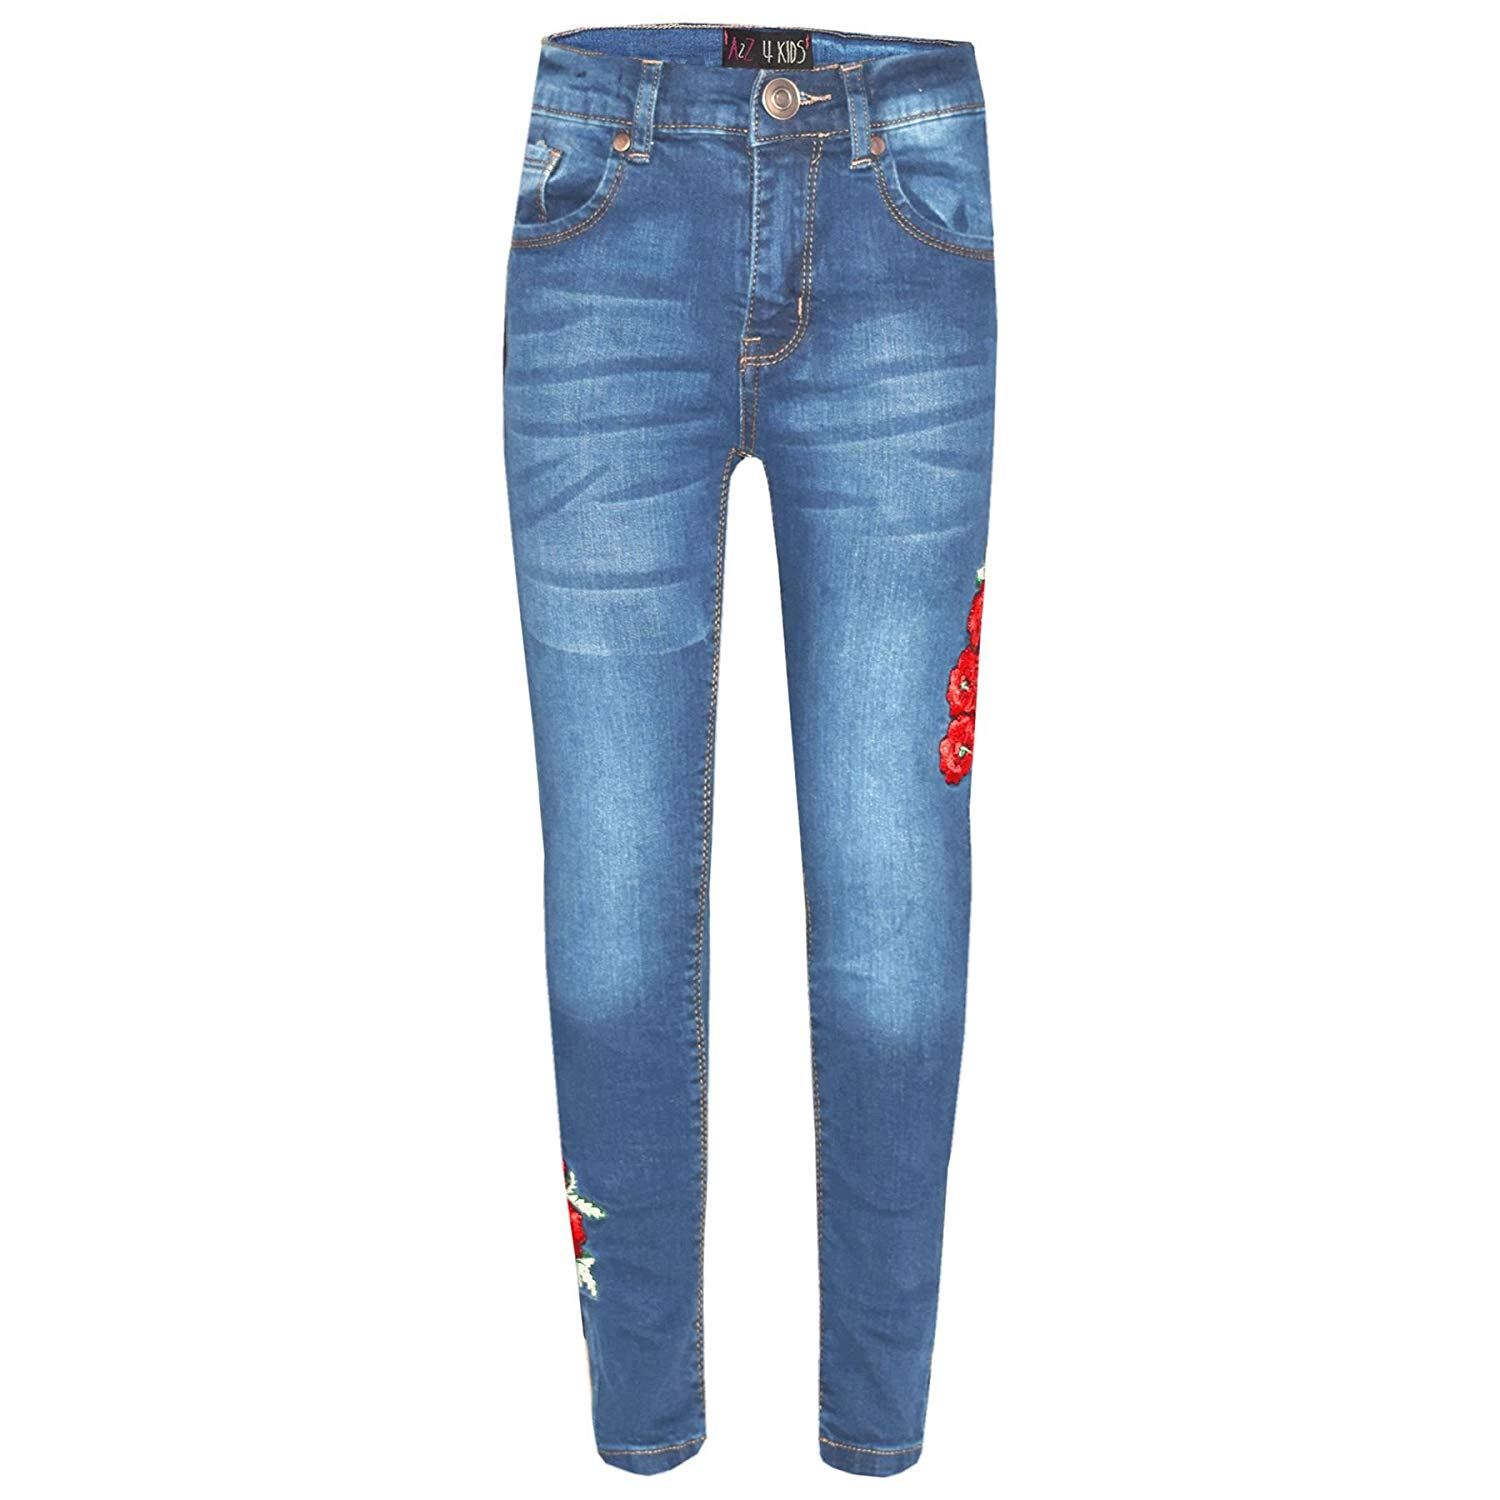 1a270539ab87d Get Quotations · Girls Stretchy Jeans Kids Ripped Denim Pants Trousers  Jeggings Age 5-13 Years